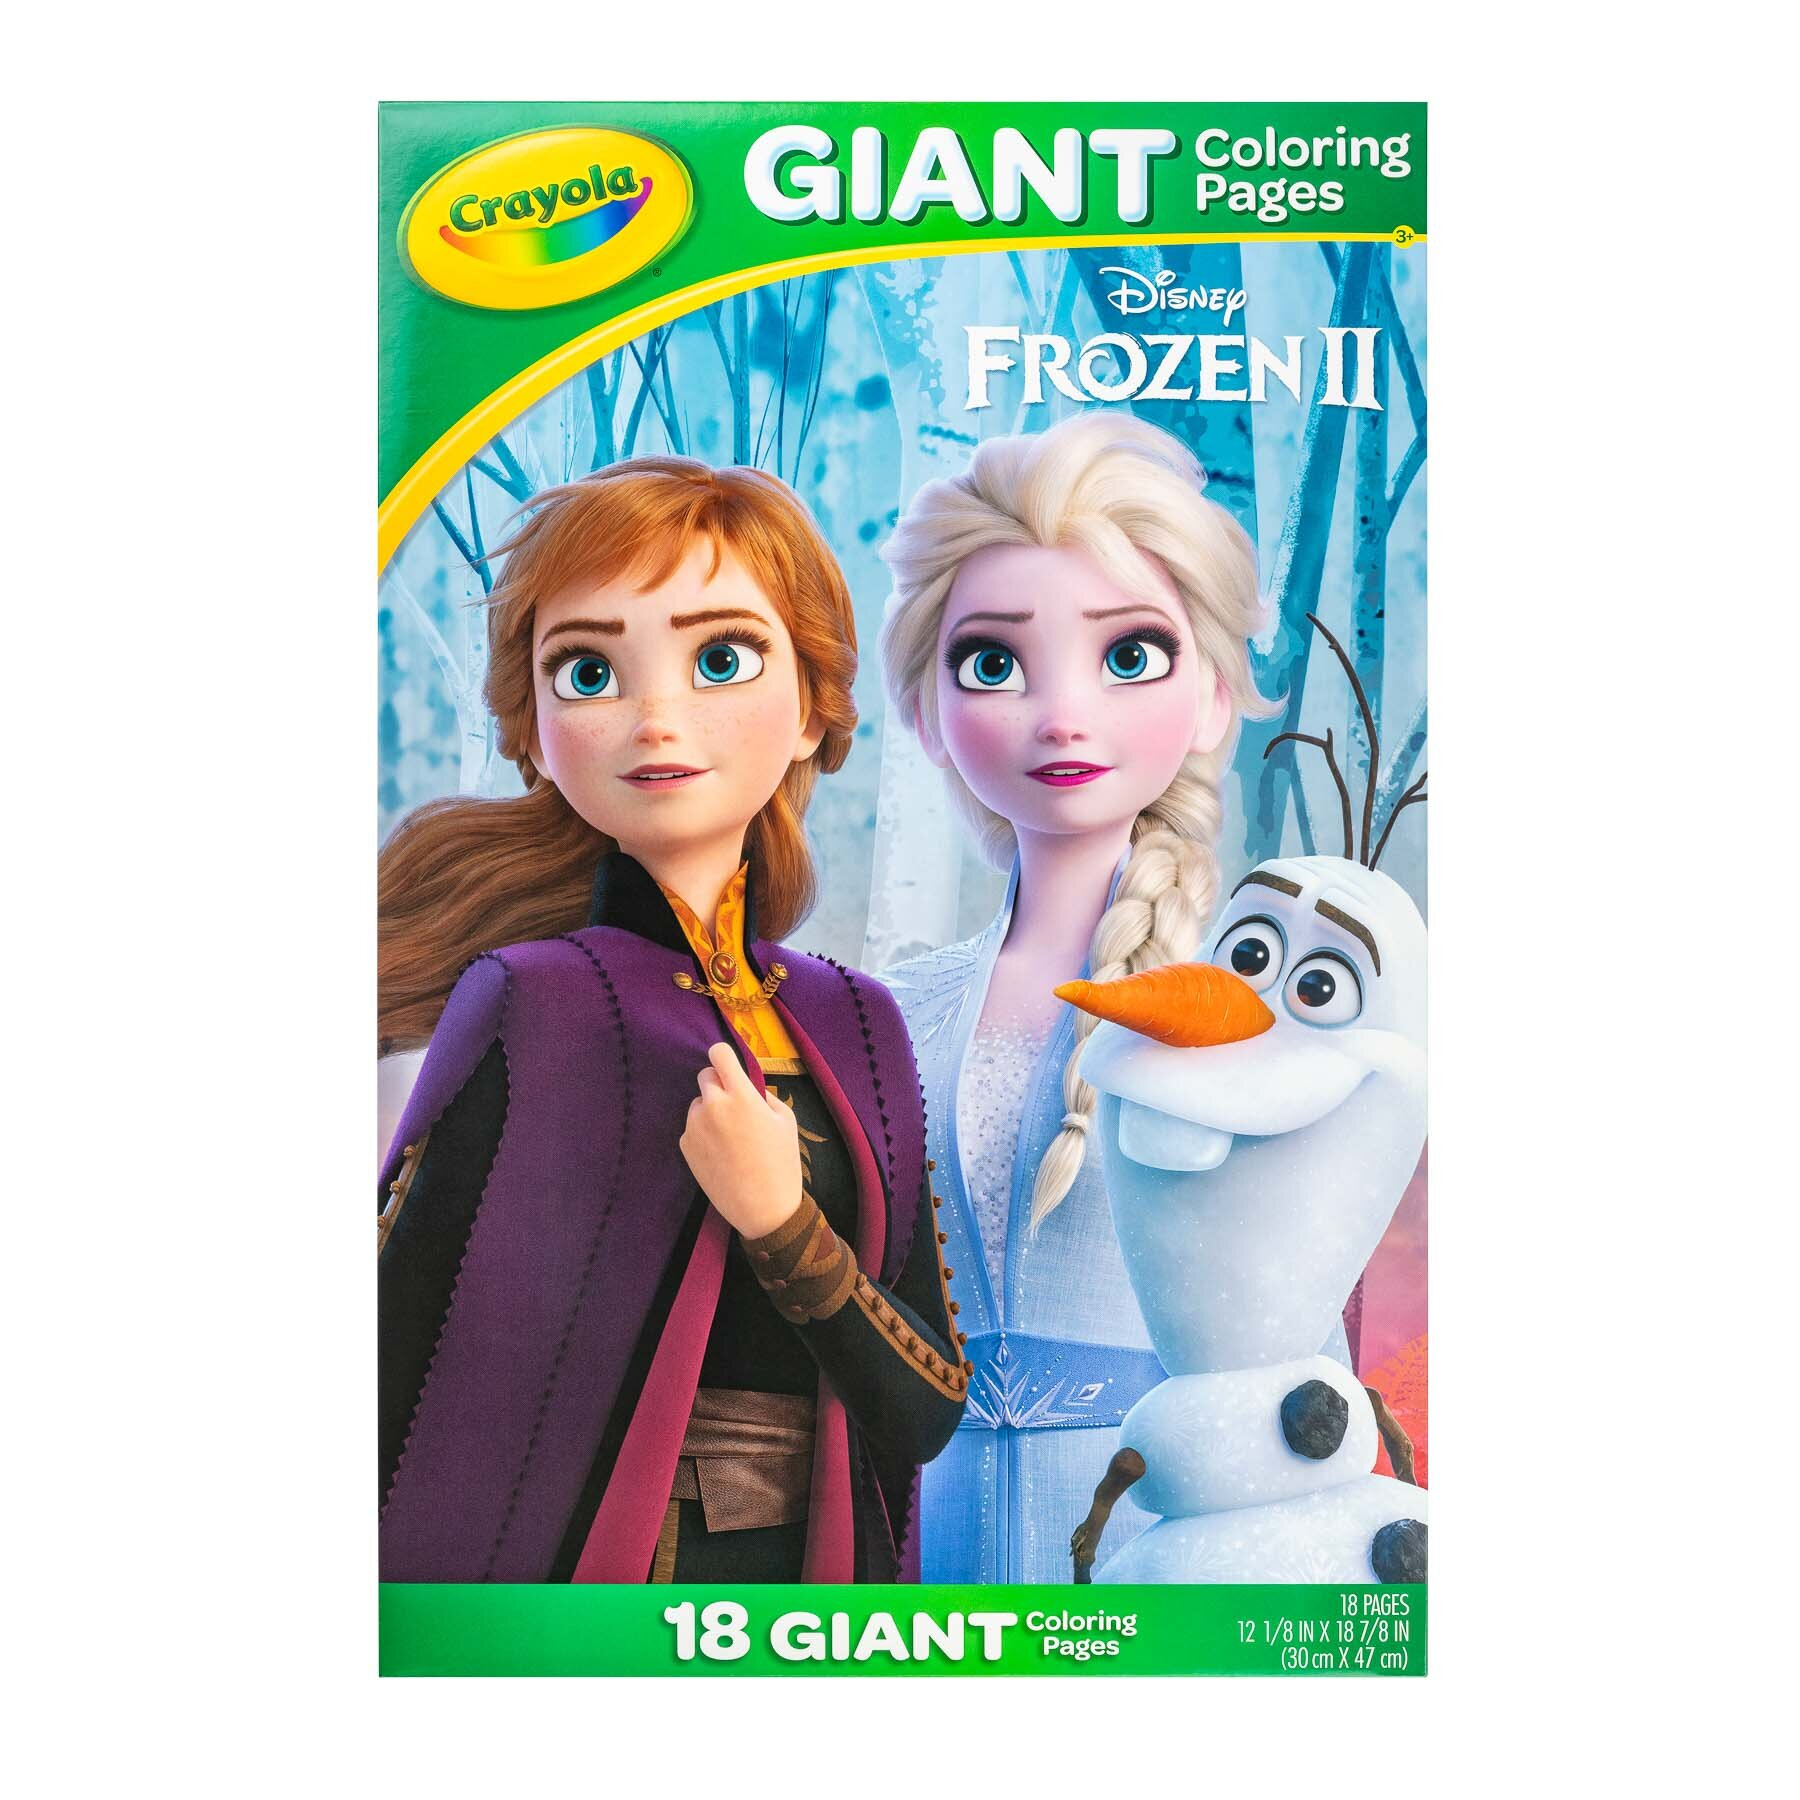 Giant Coloring Pages Frozen II Front Books and publication - product photography sample